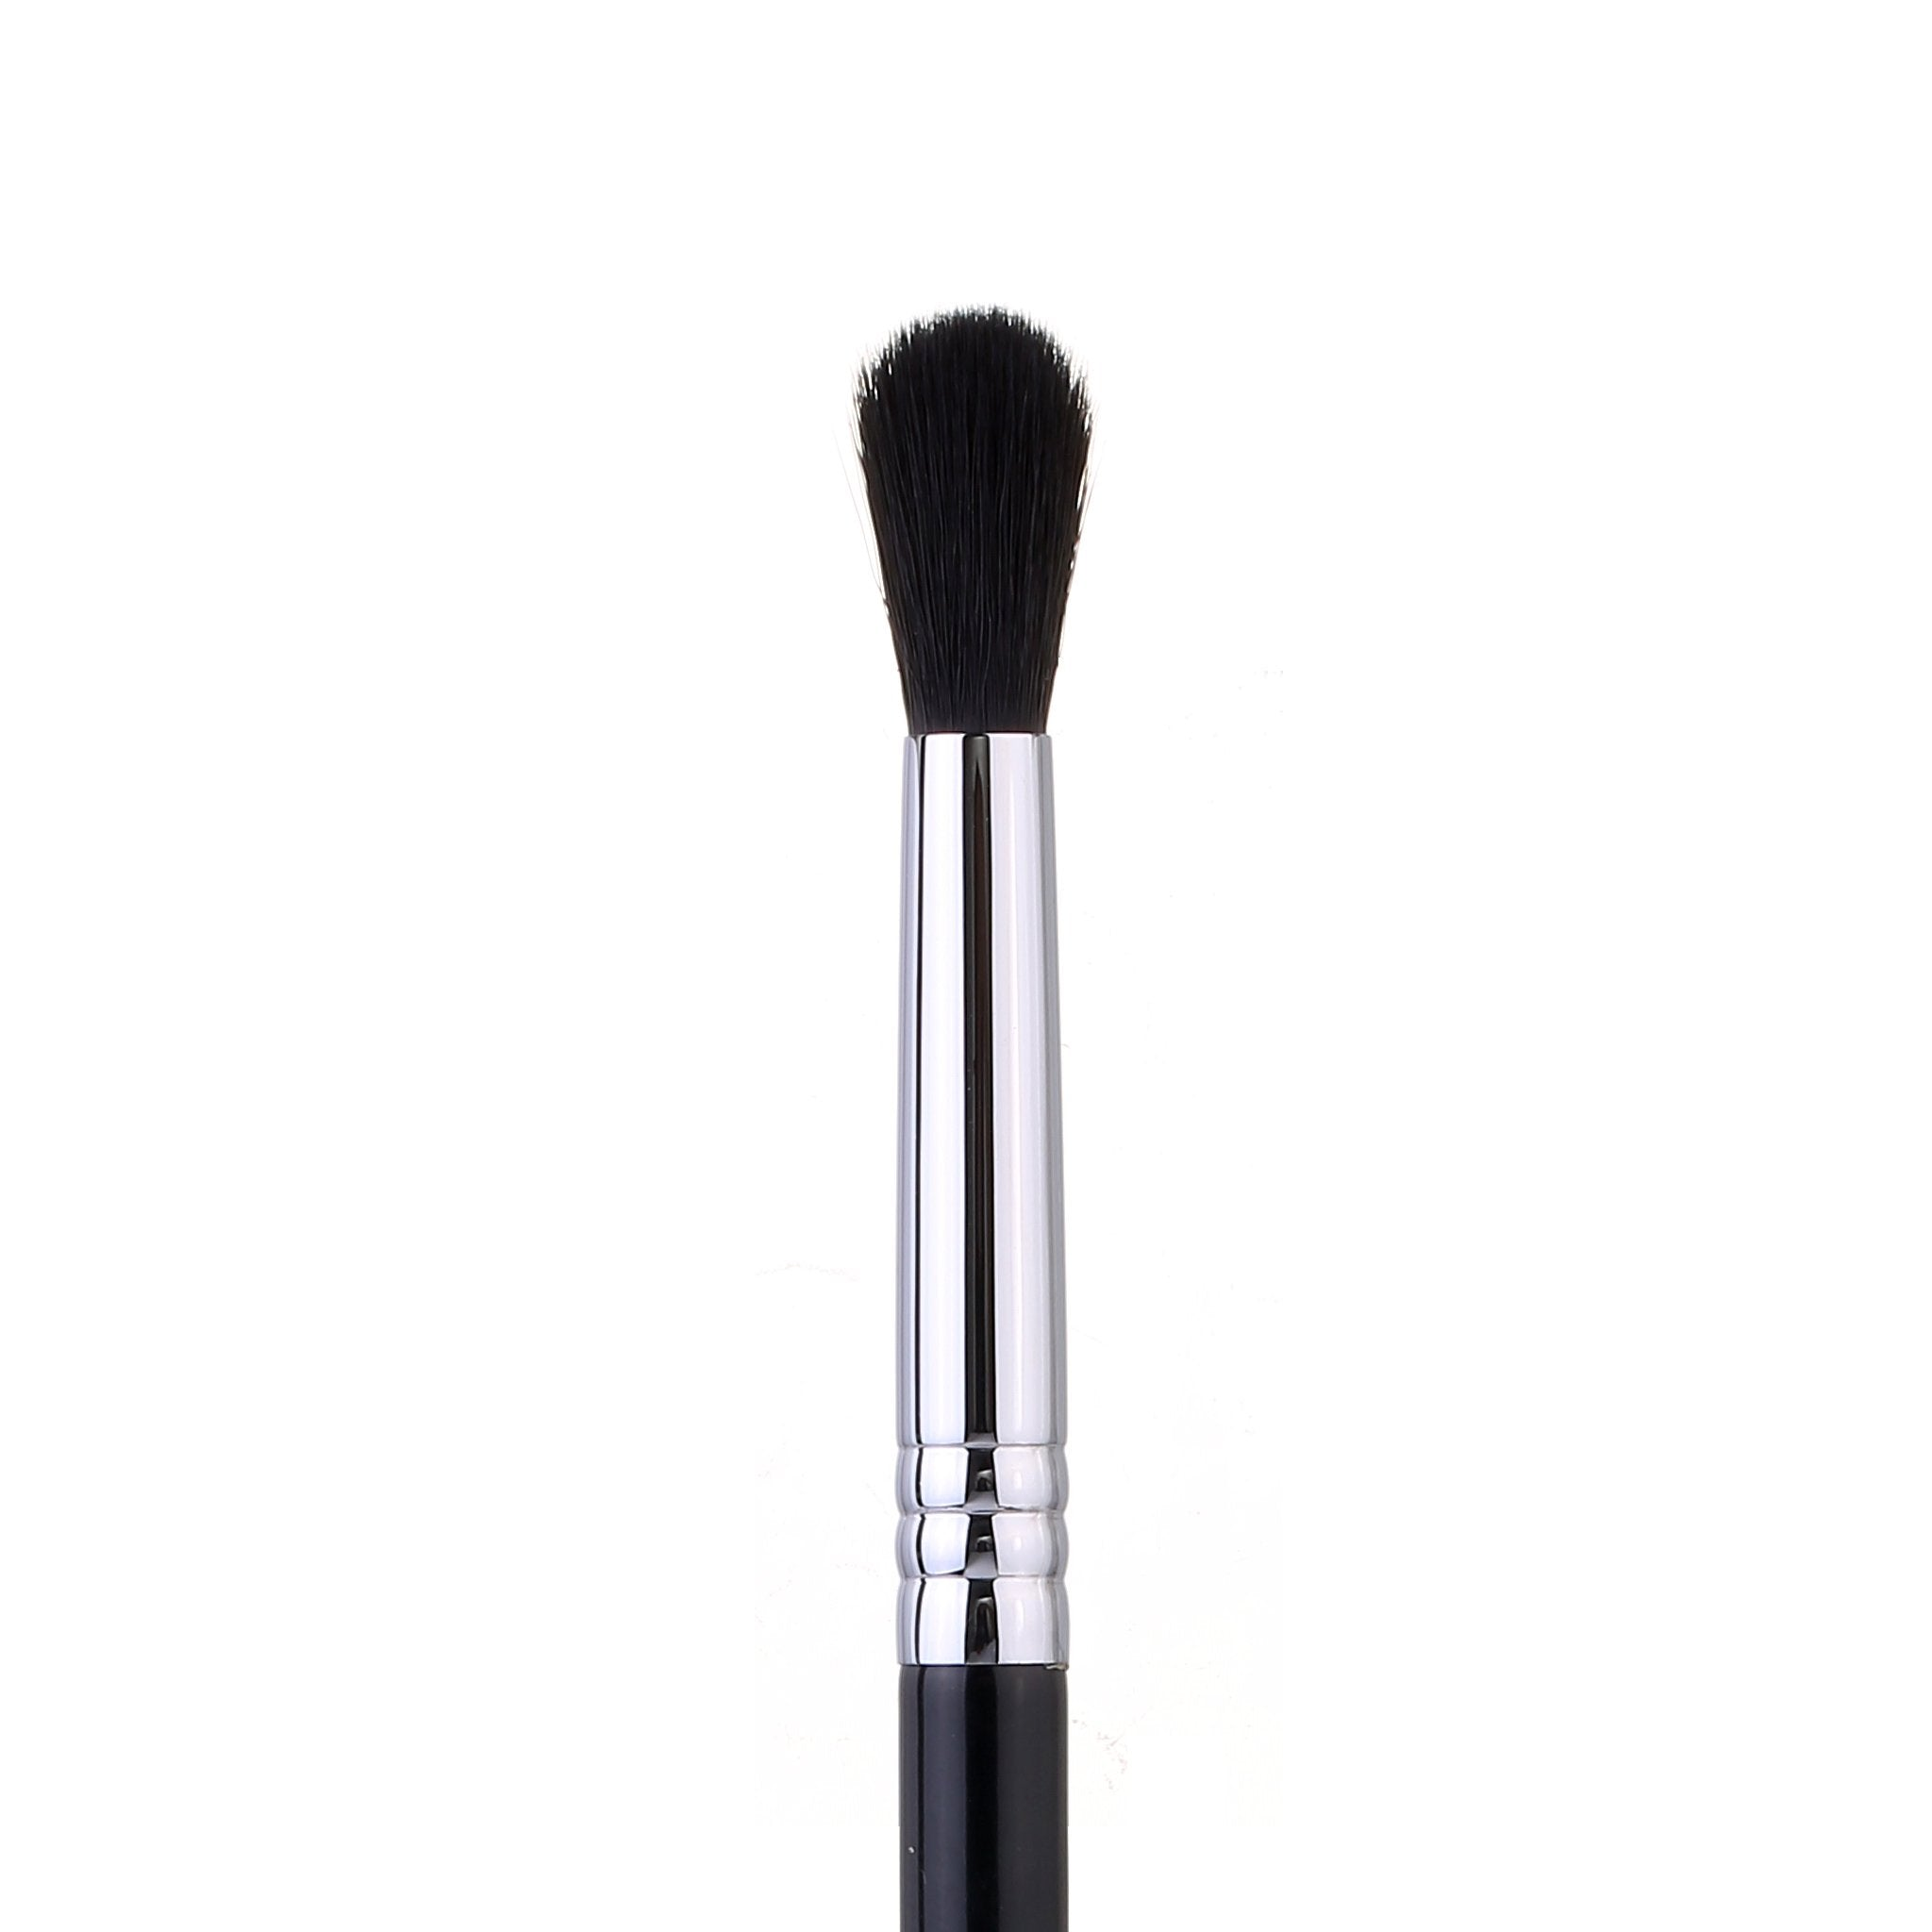 Phoera Tapered Blending E40, Cosmetic Tools by My Wholesale Warehouse